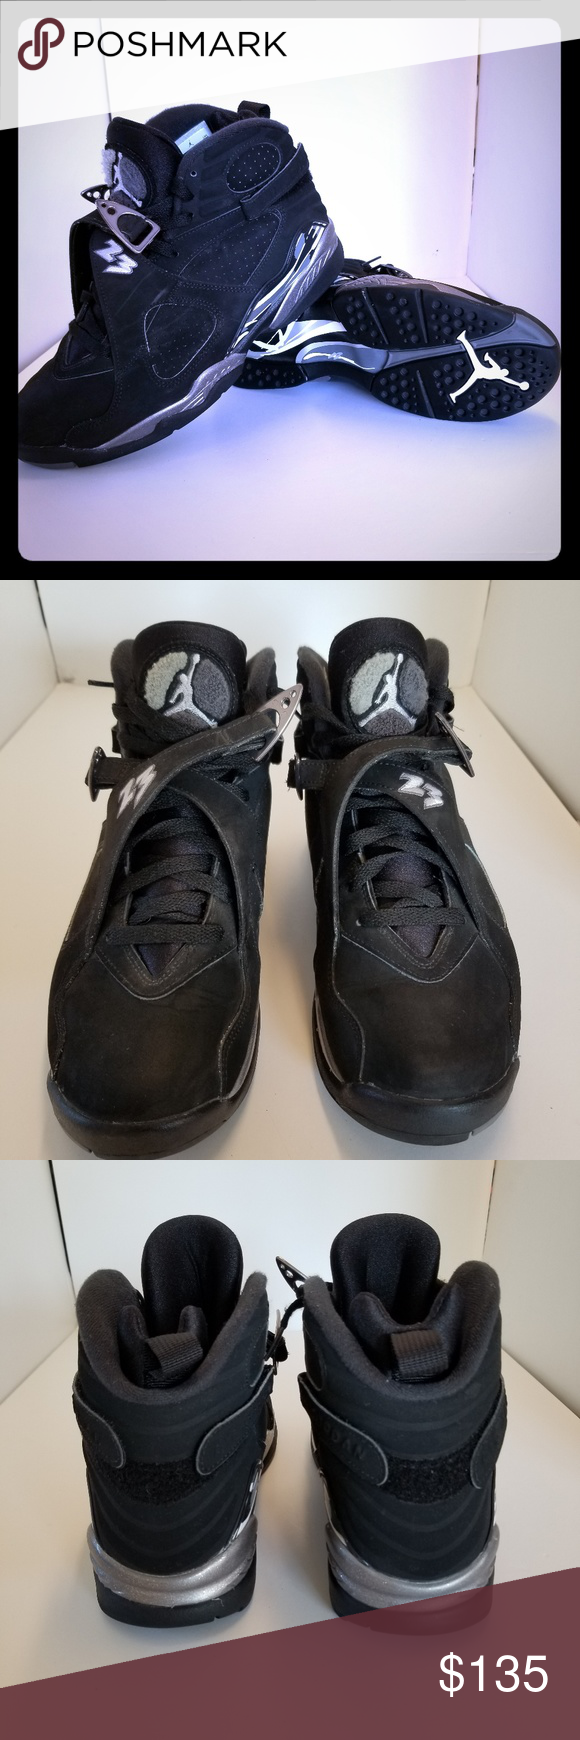 b14c488c072 NIKE AIR JORDAN 8 VIII RETRO Chrome black white Selling a pair of Retro  Jordan 8